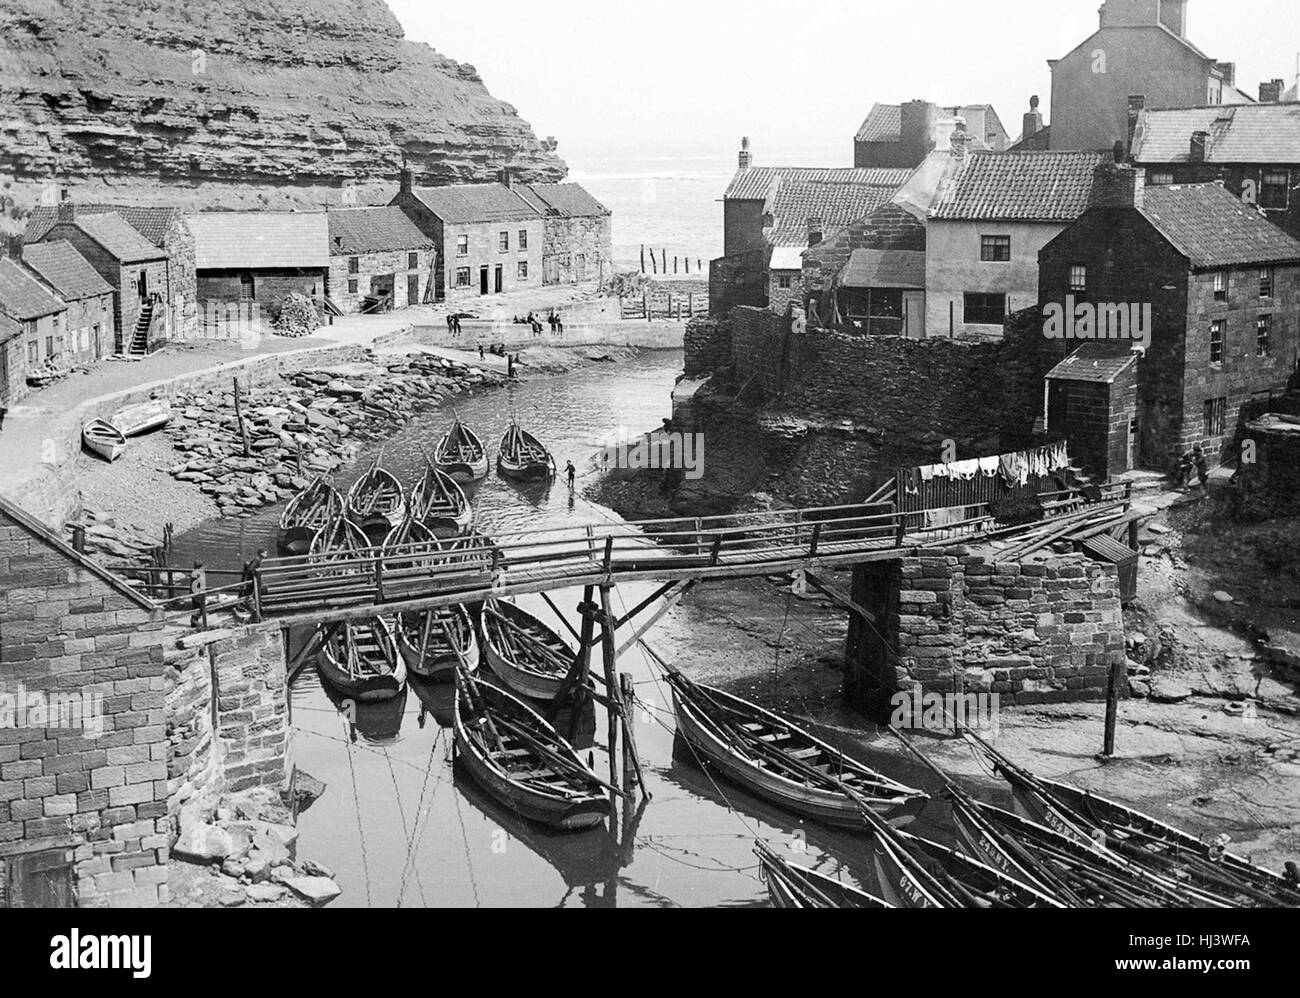 Staithes Harbour north east coast of Yorkshire Uk 1896 - Stock Image